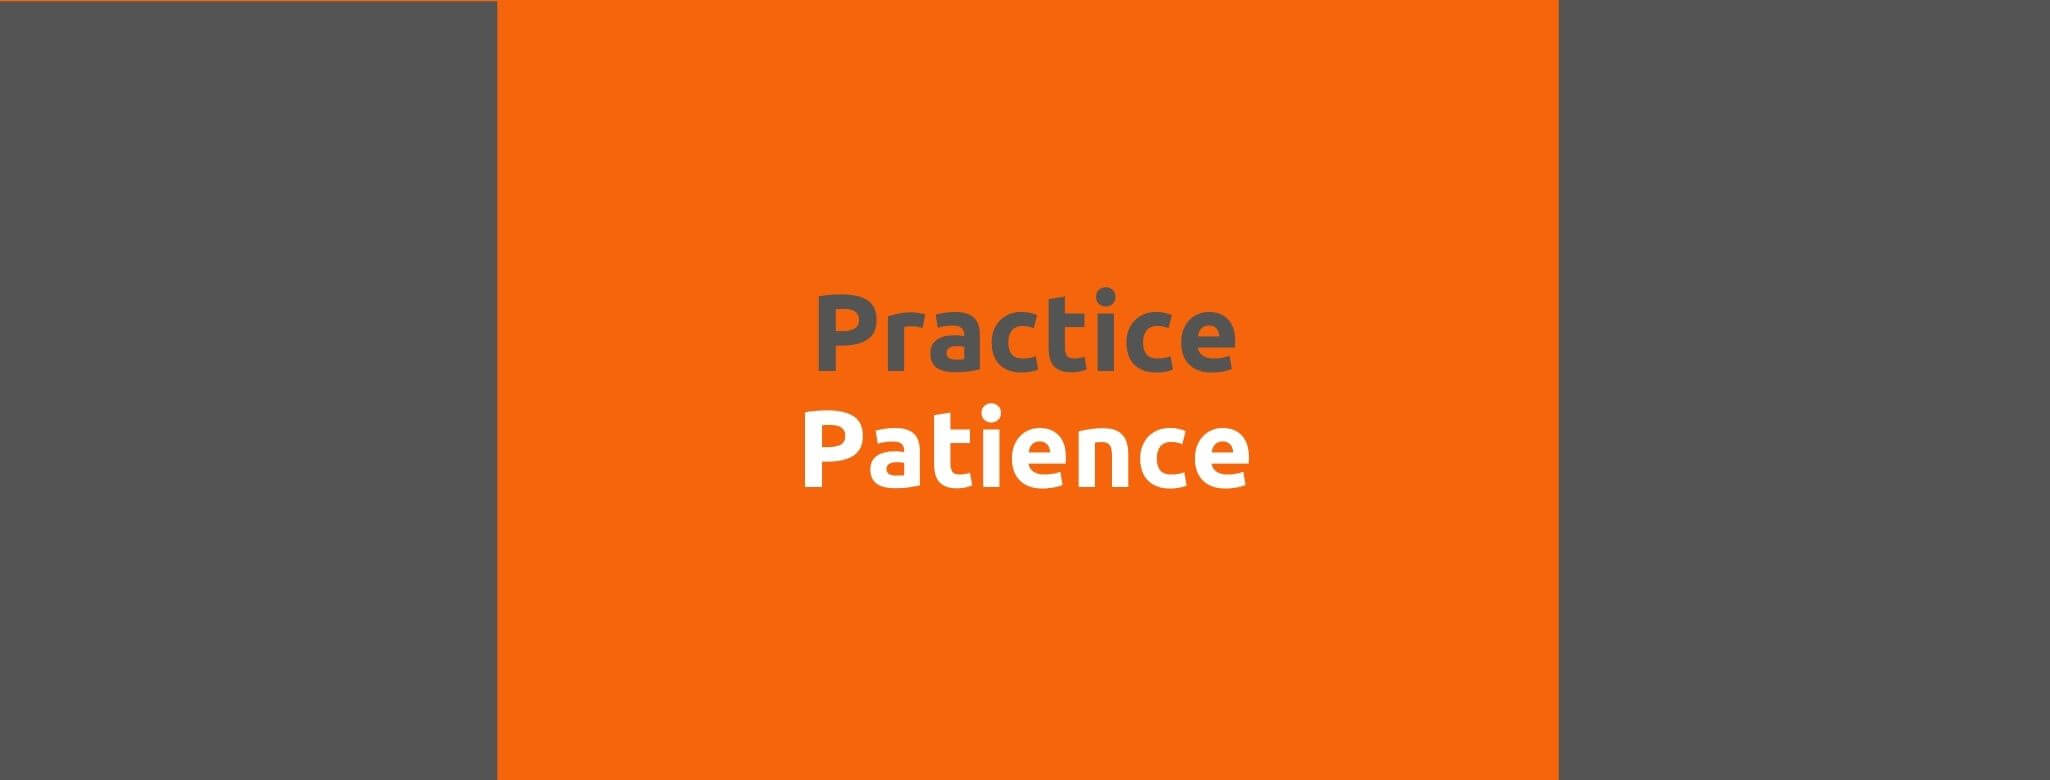 Practice Patience - 35 Things Every Seller Should Do to Offer Great Customer Service - Replyco Helpdesk Software for eCommerce